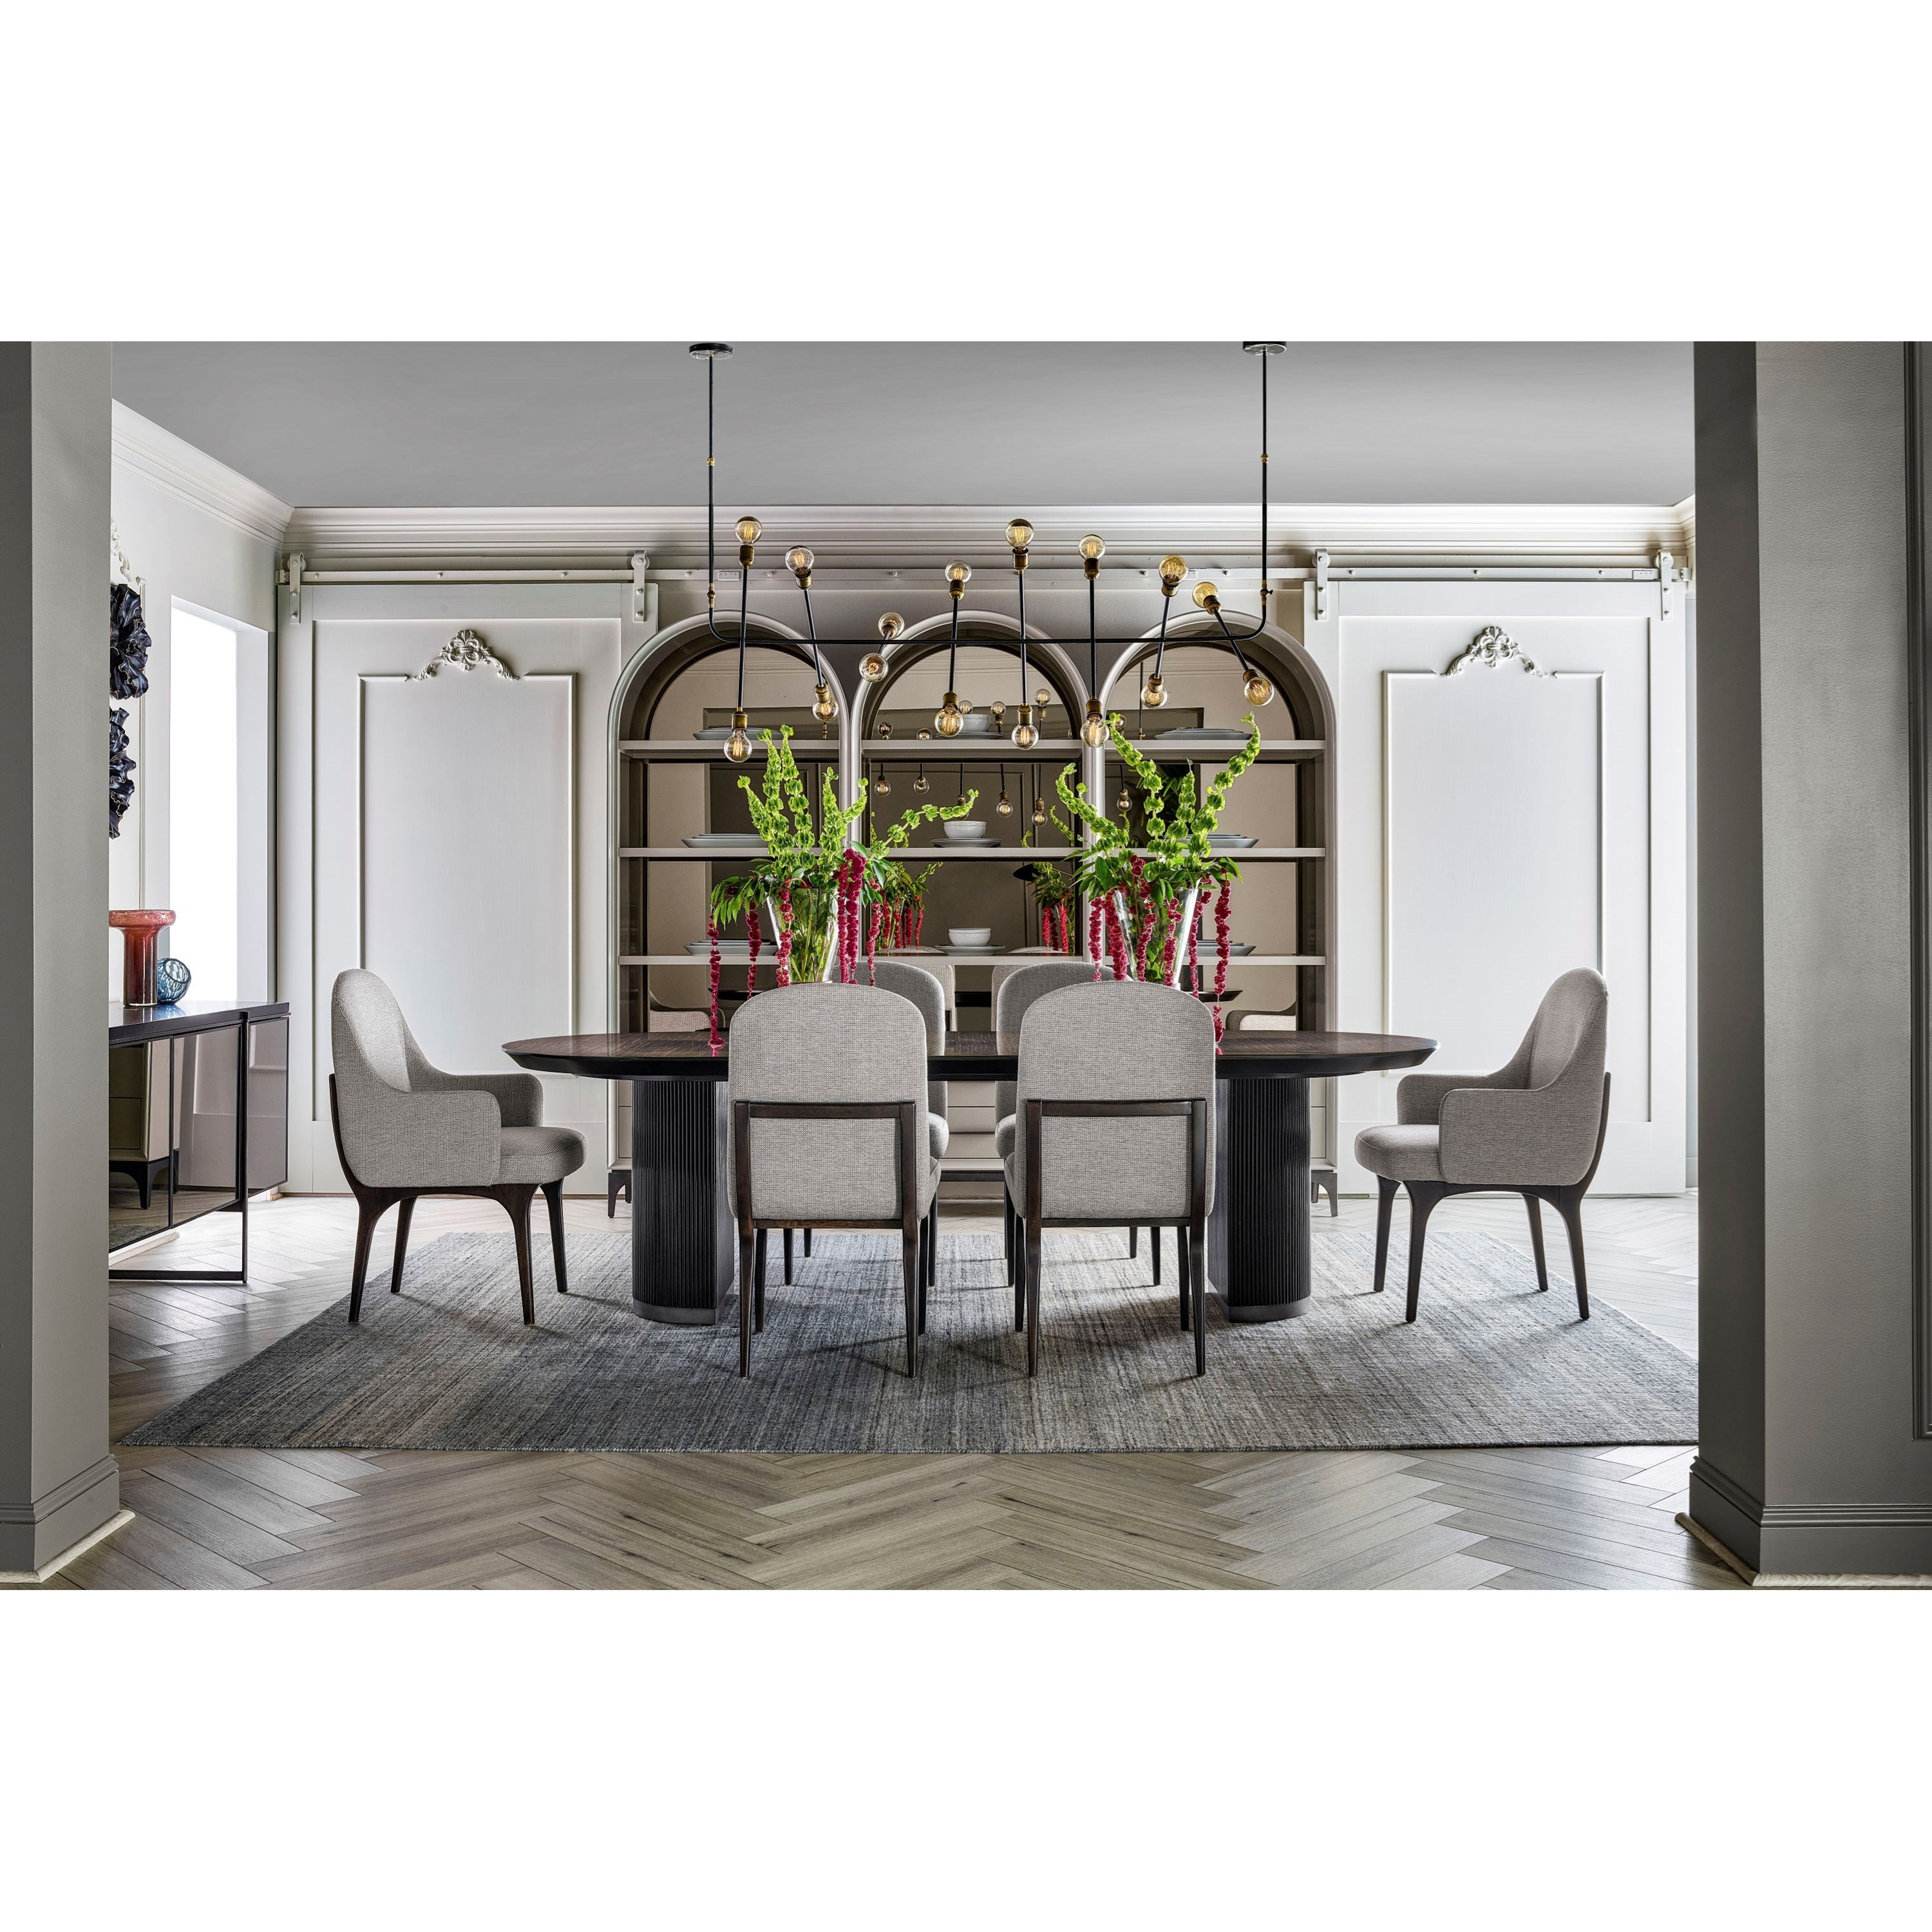 Nina Magon 941 7-Piece Dining Table and Chair Set by Universal at Zak's Home